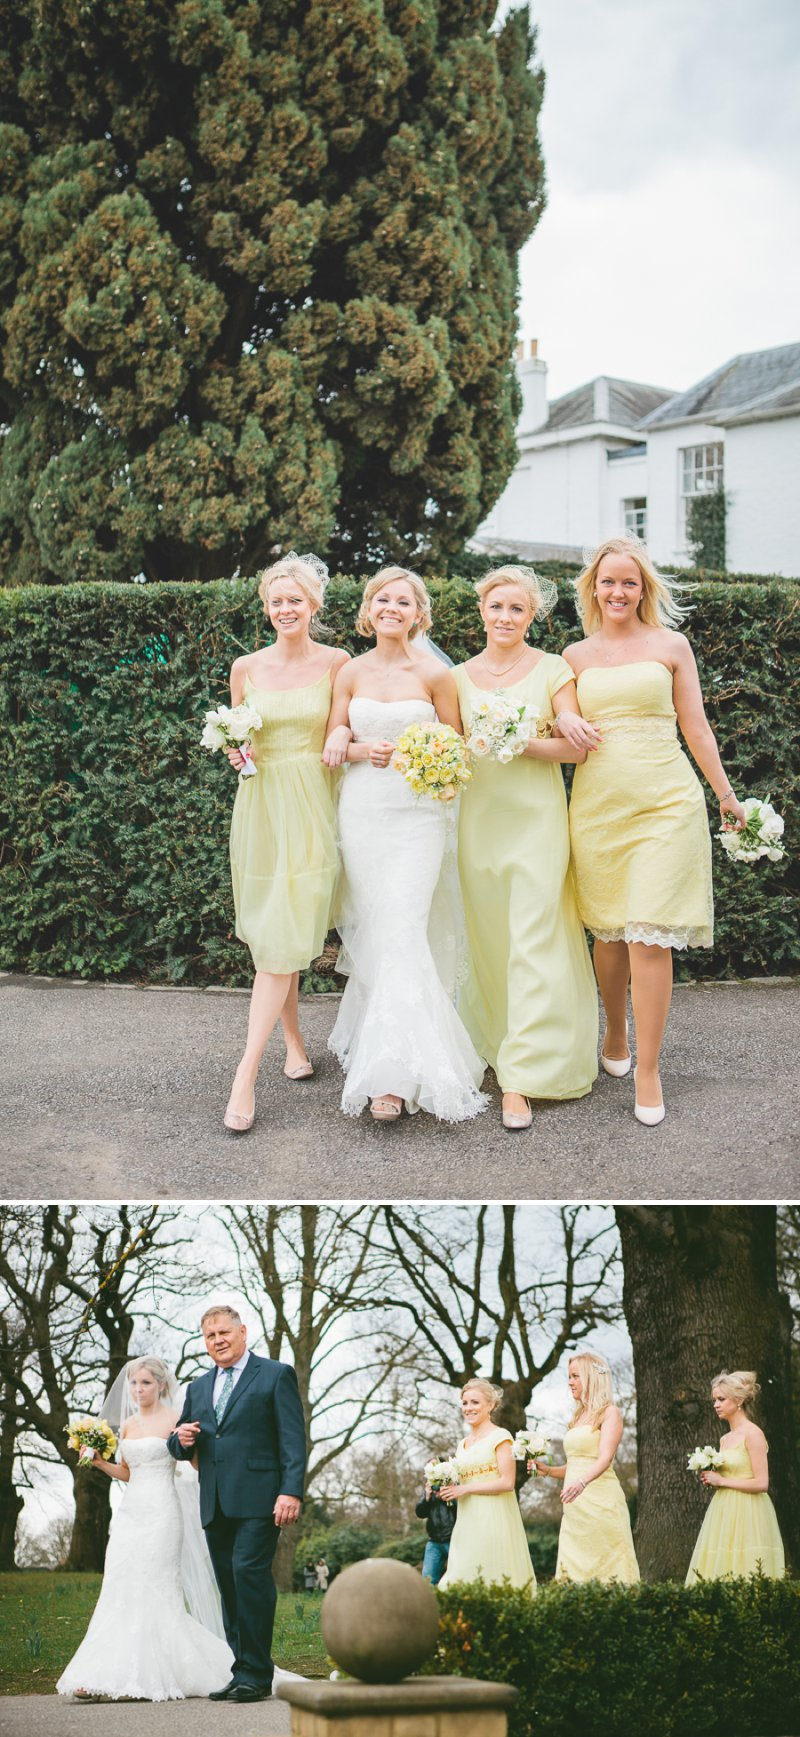 Yellow Themed Vintage Inspired Easter Wedding At Pembroke Lodge Richmond Park With Bride In Balira By Pronovias And Burberry Sandals With Groom In Blue Reiss Suit And Bridesmaids In Yellow Vintage Dresses With Images By Shell De Mar 4